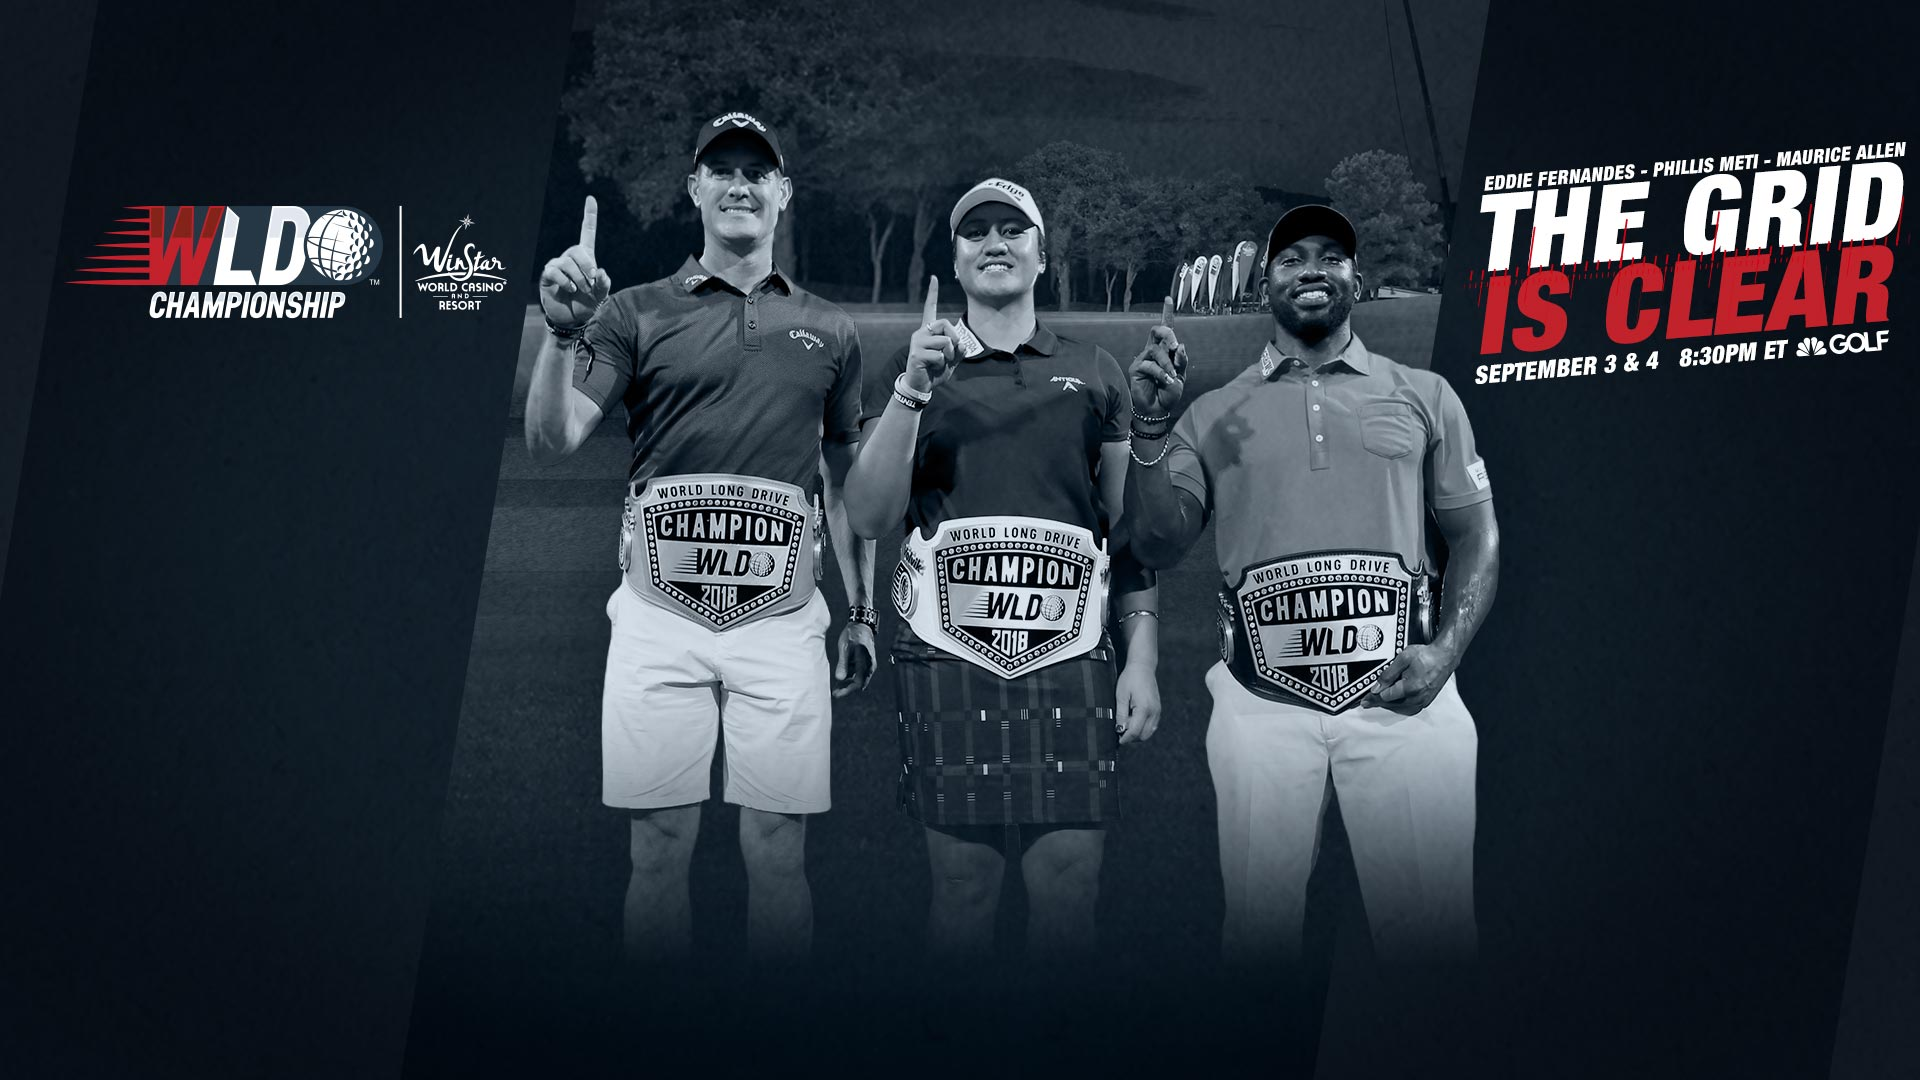 world long drive 2019 championship